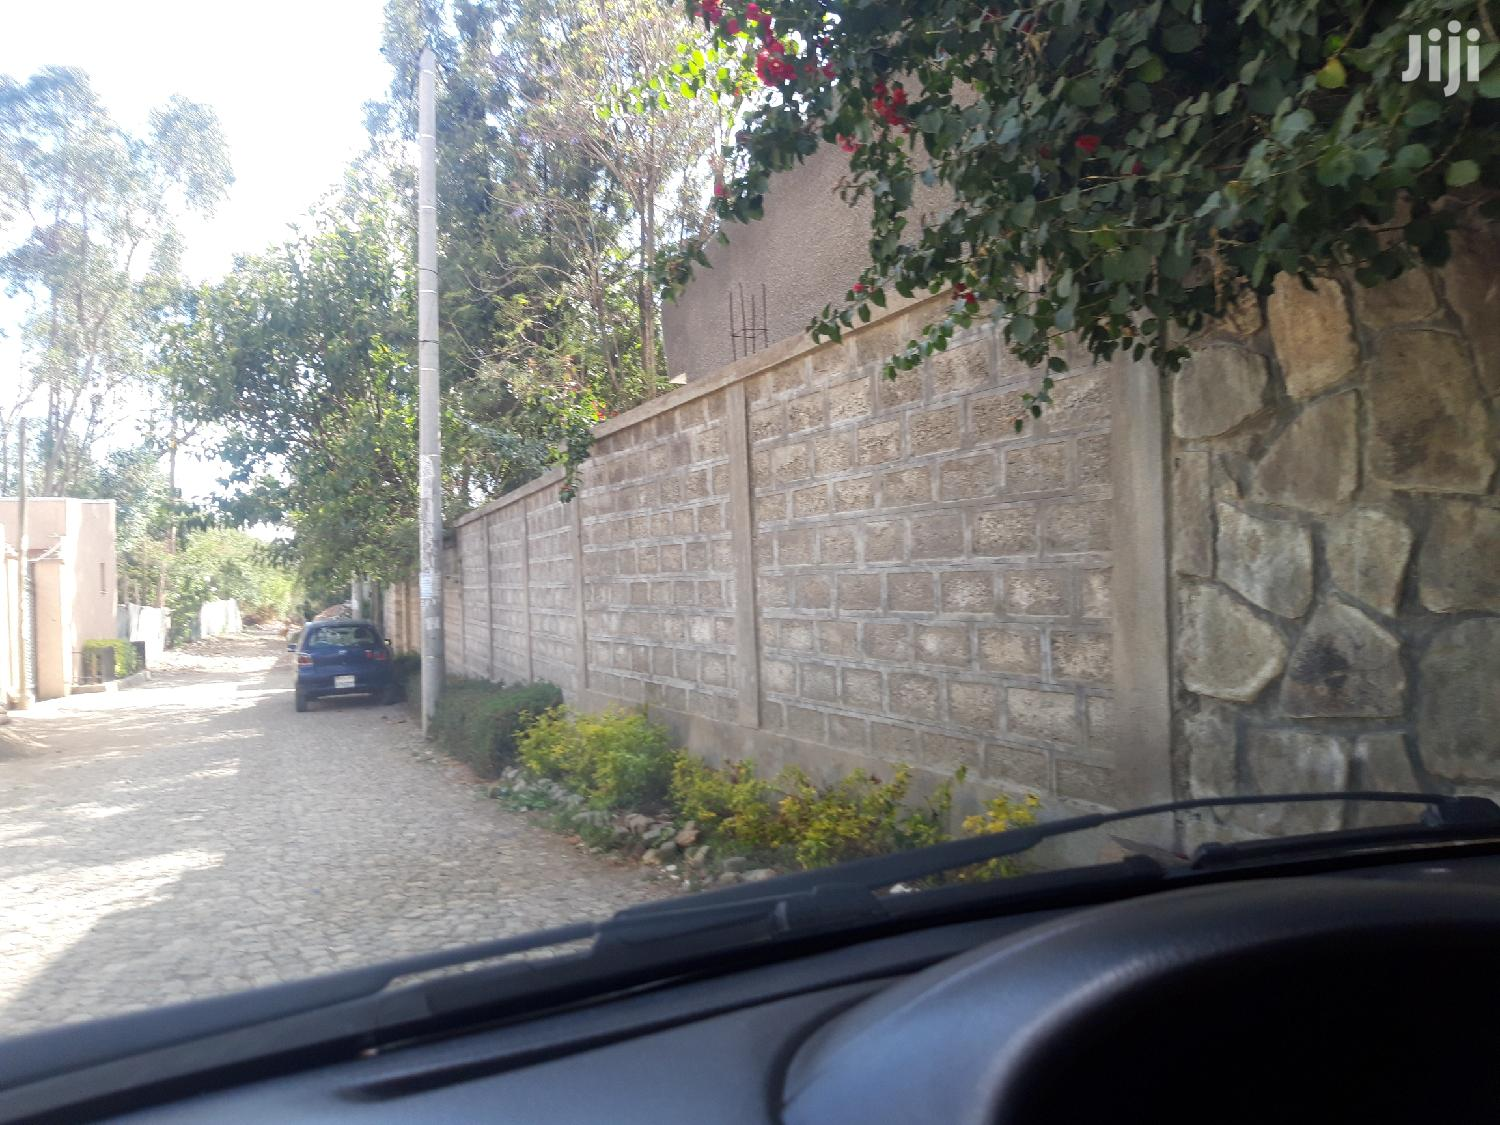 3bdrm House in Bole for Sale   Houses & Apartments For Sale for sale in Bole, Addis Ababa, Ethiopia